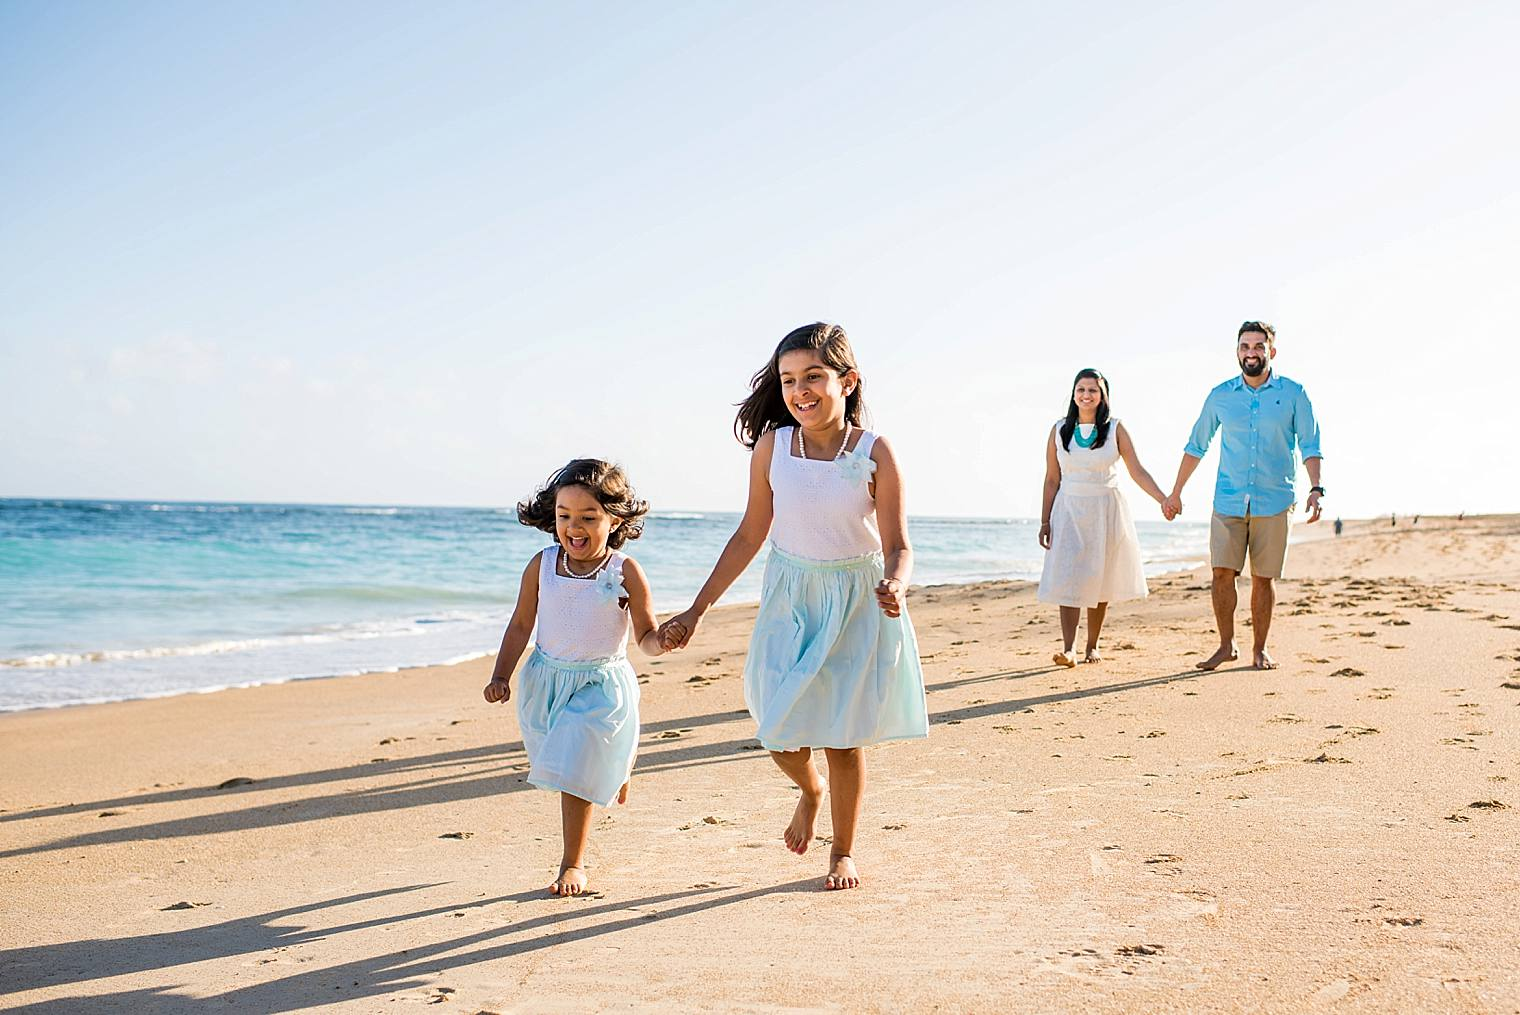 Top 10 Best Family Holiday Destinations in India